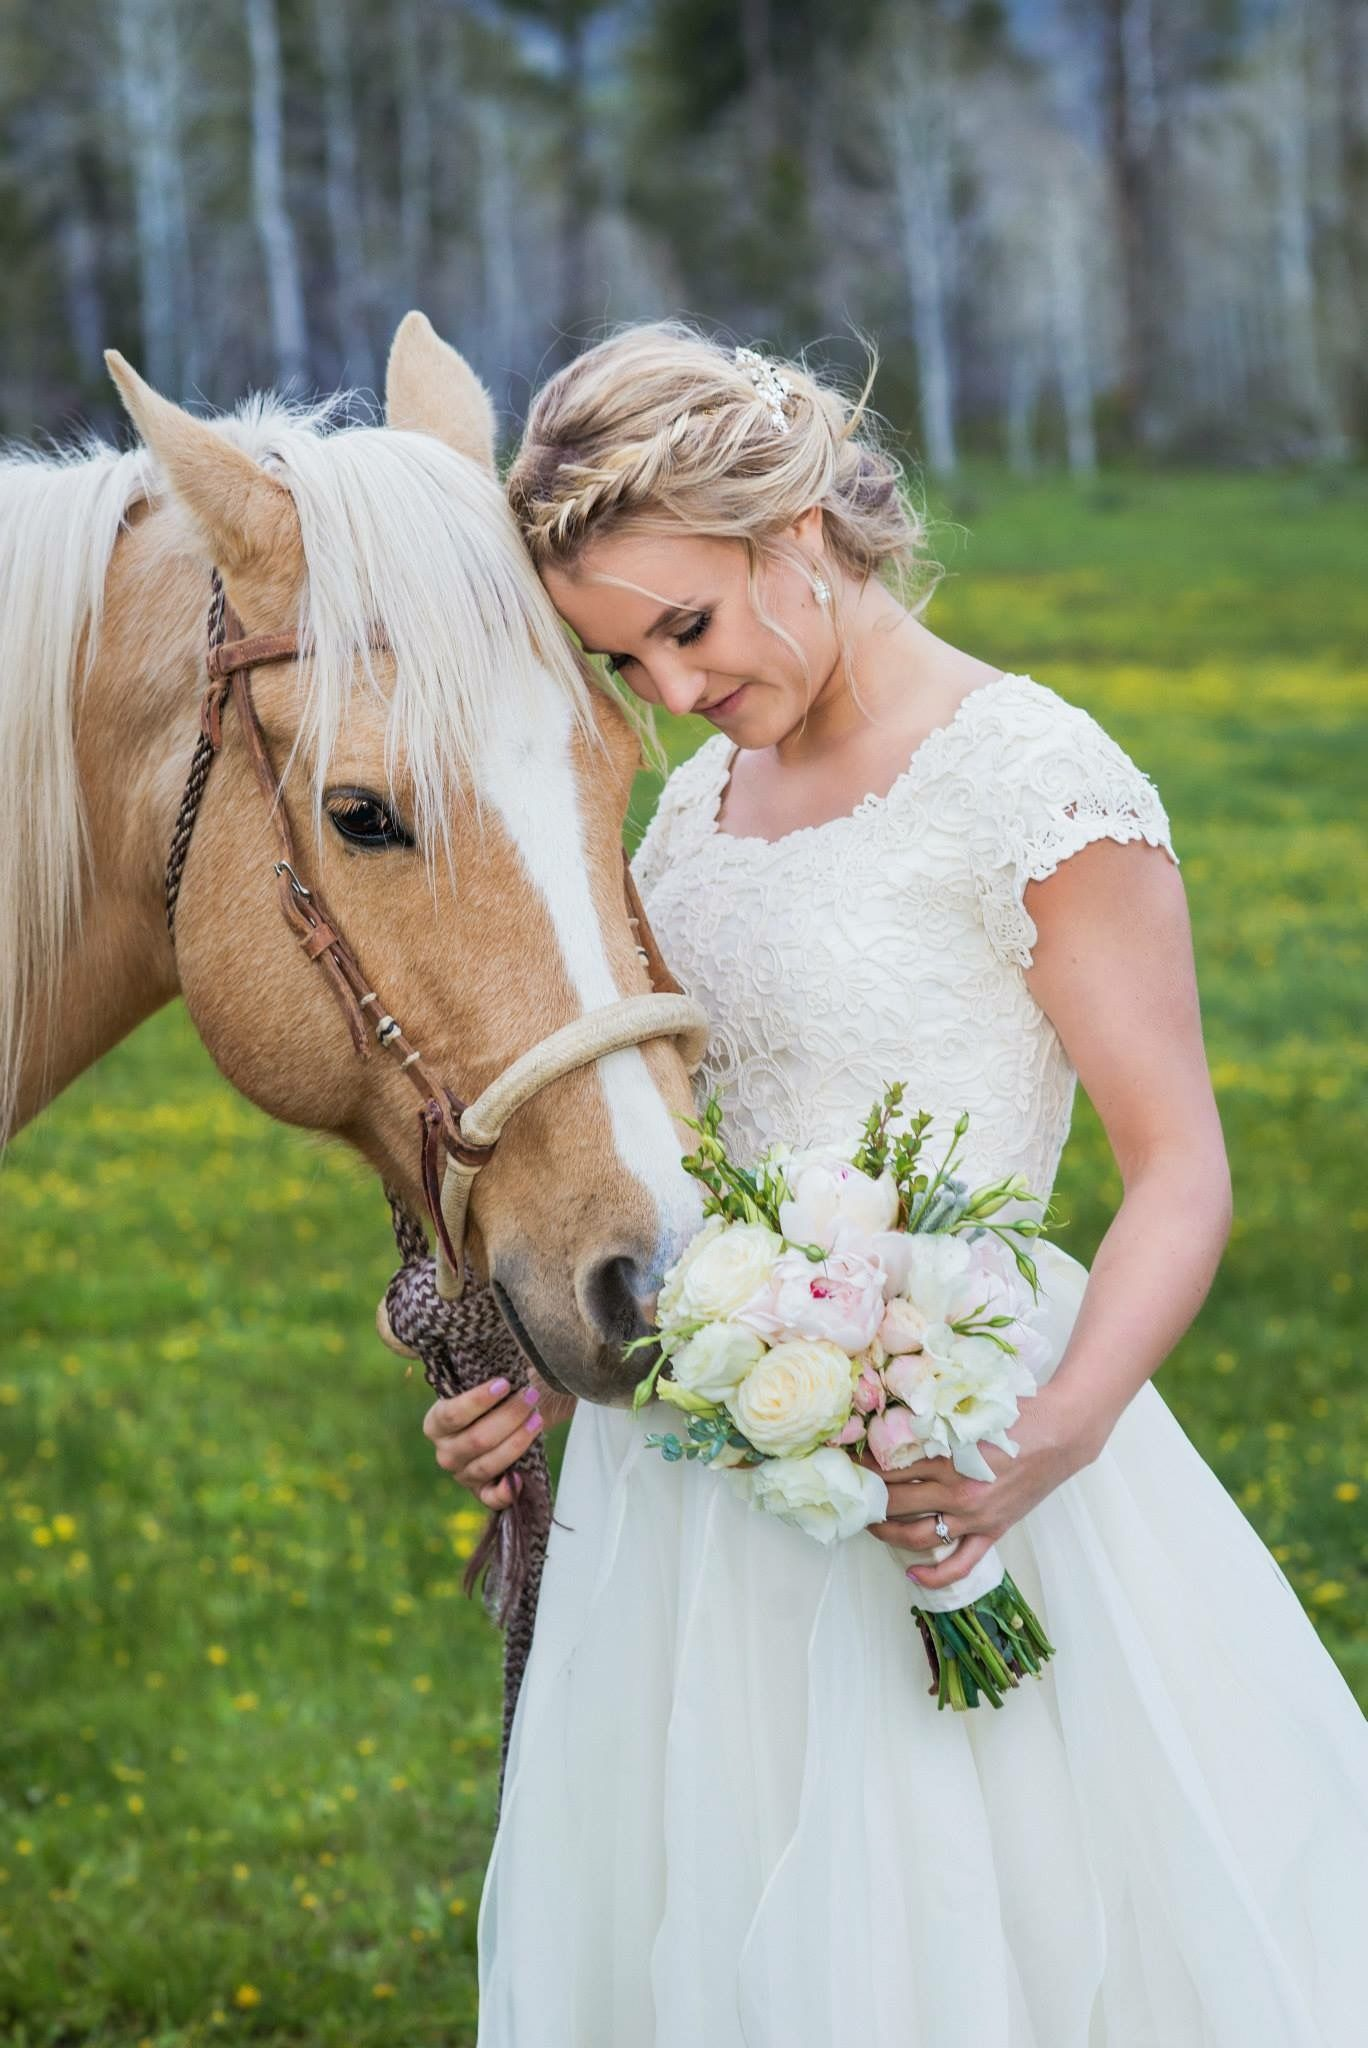 Modest Wedding Dress With Half Sleeve And A Full Skirt From Alta Moda Bridal Gown: Horse For Western Wedding Dresses At Websimilar.org